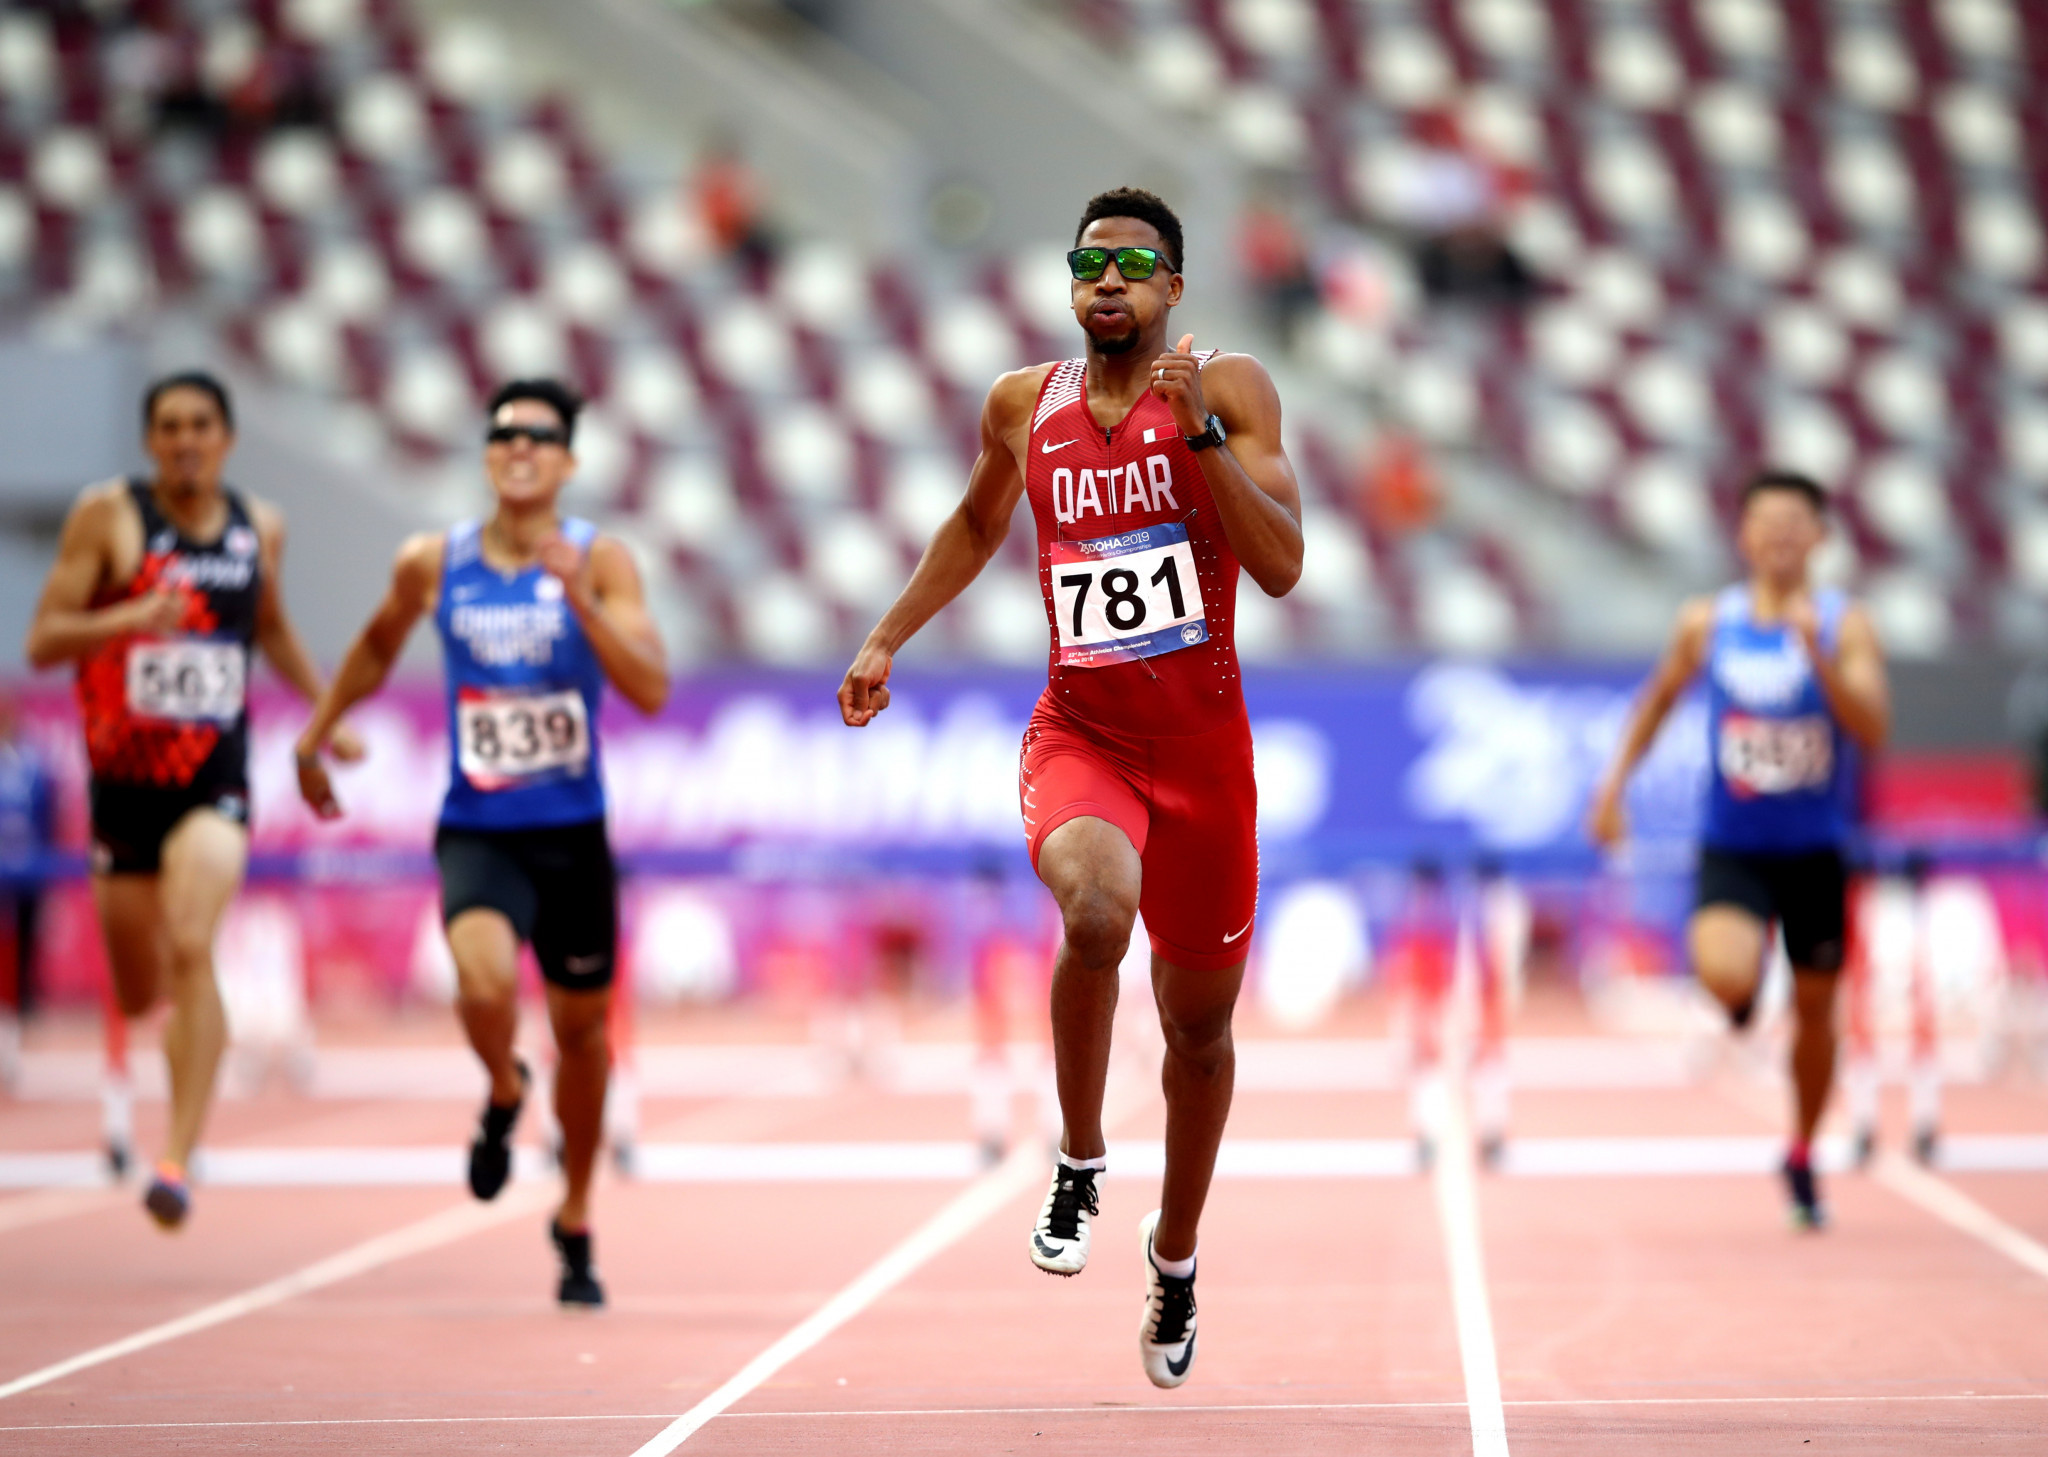 Qatari Abderrahman Samba's dominant men's 400 metres hurdles victory highlighted the second day of action at the Asian Athletics Championships in Doha ©Getty Images